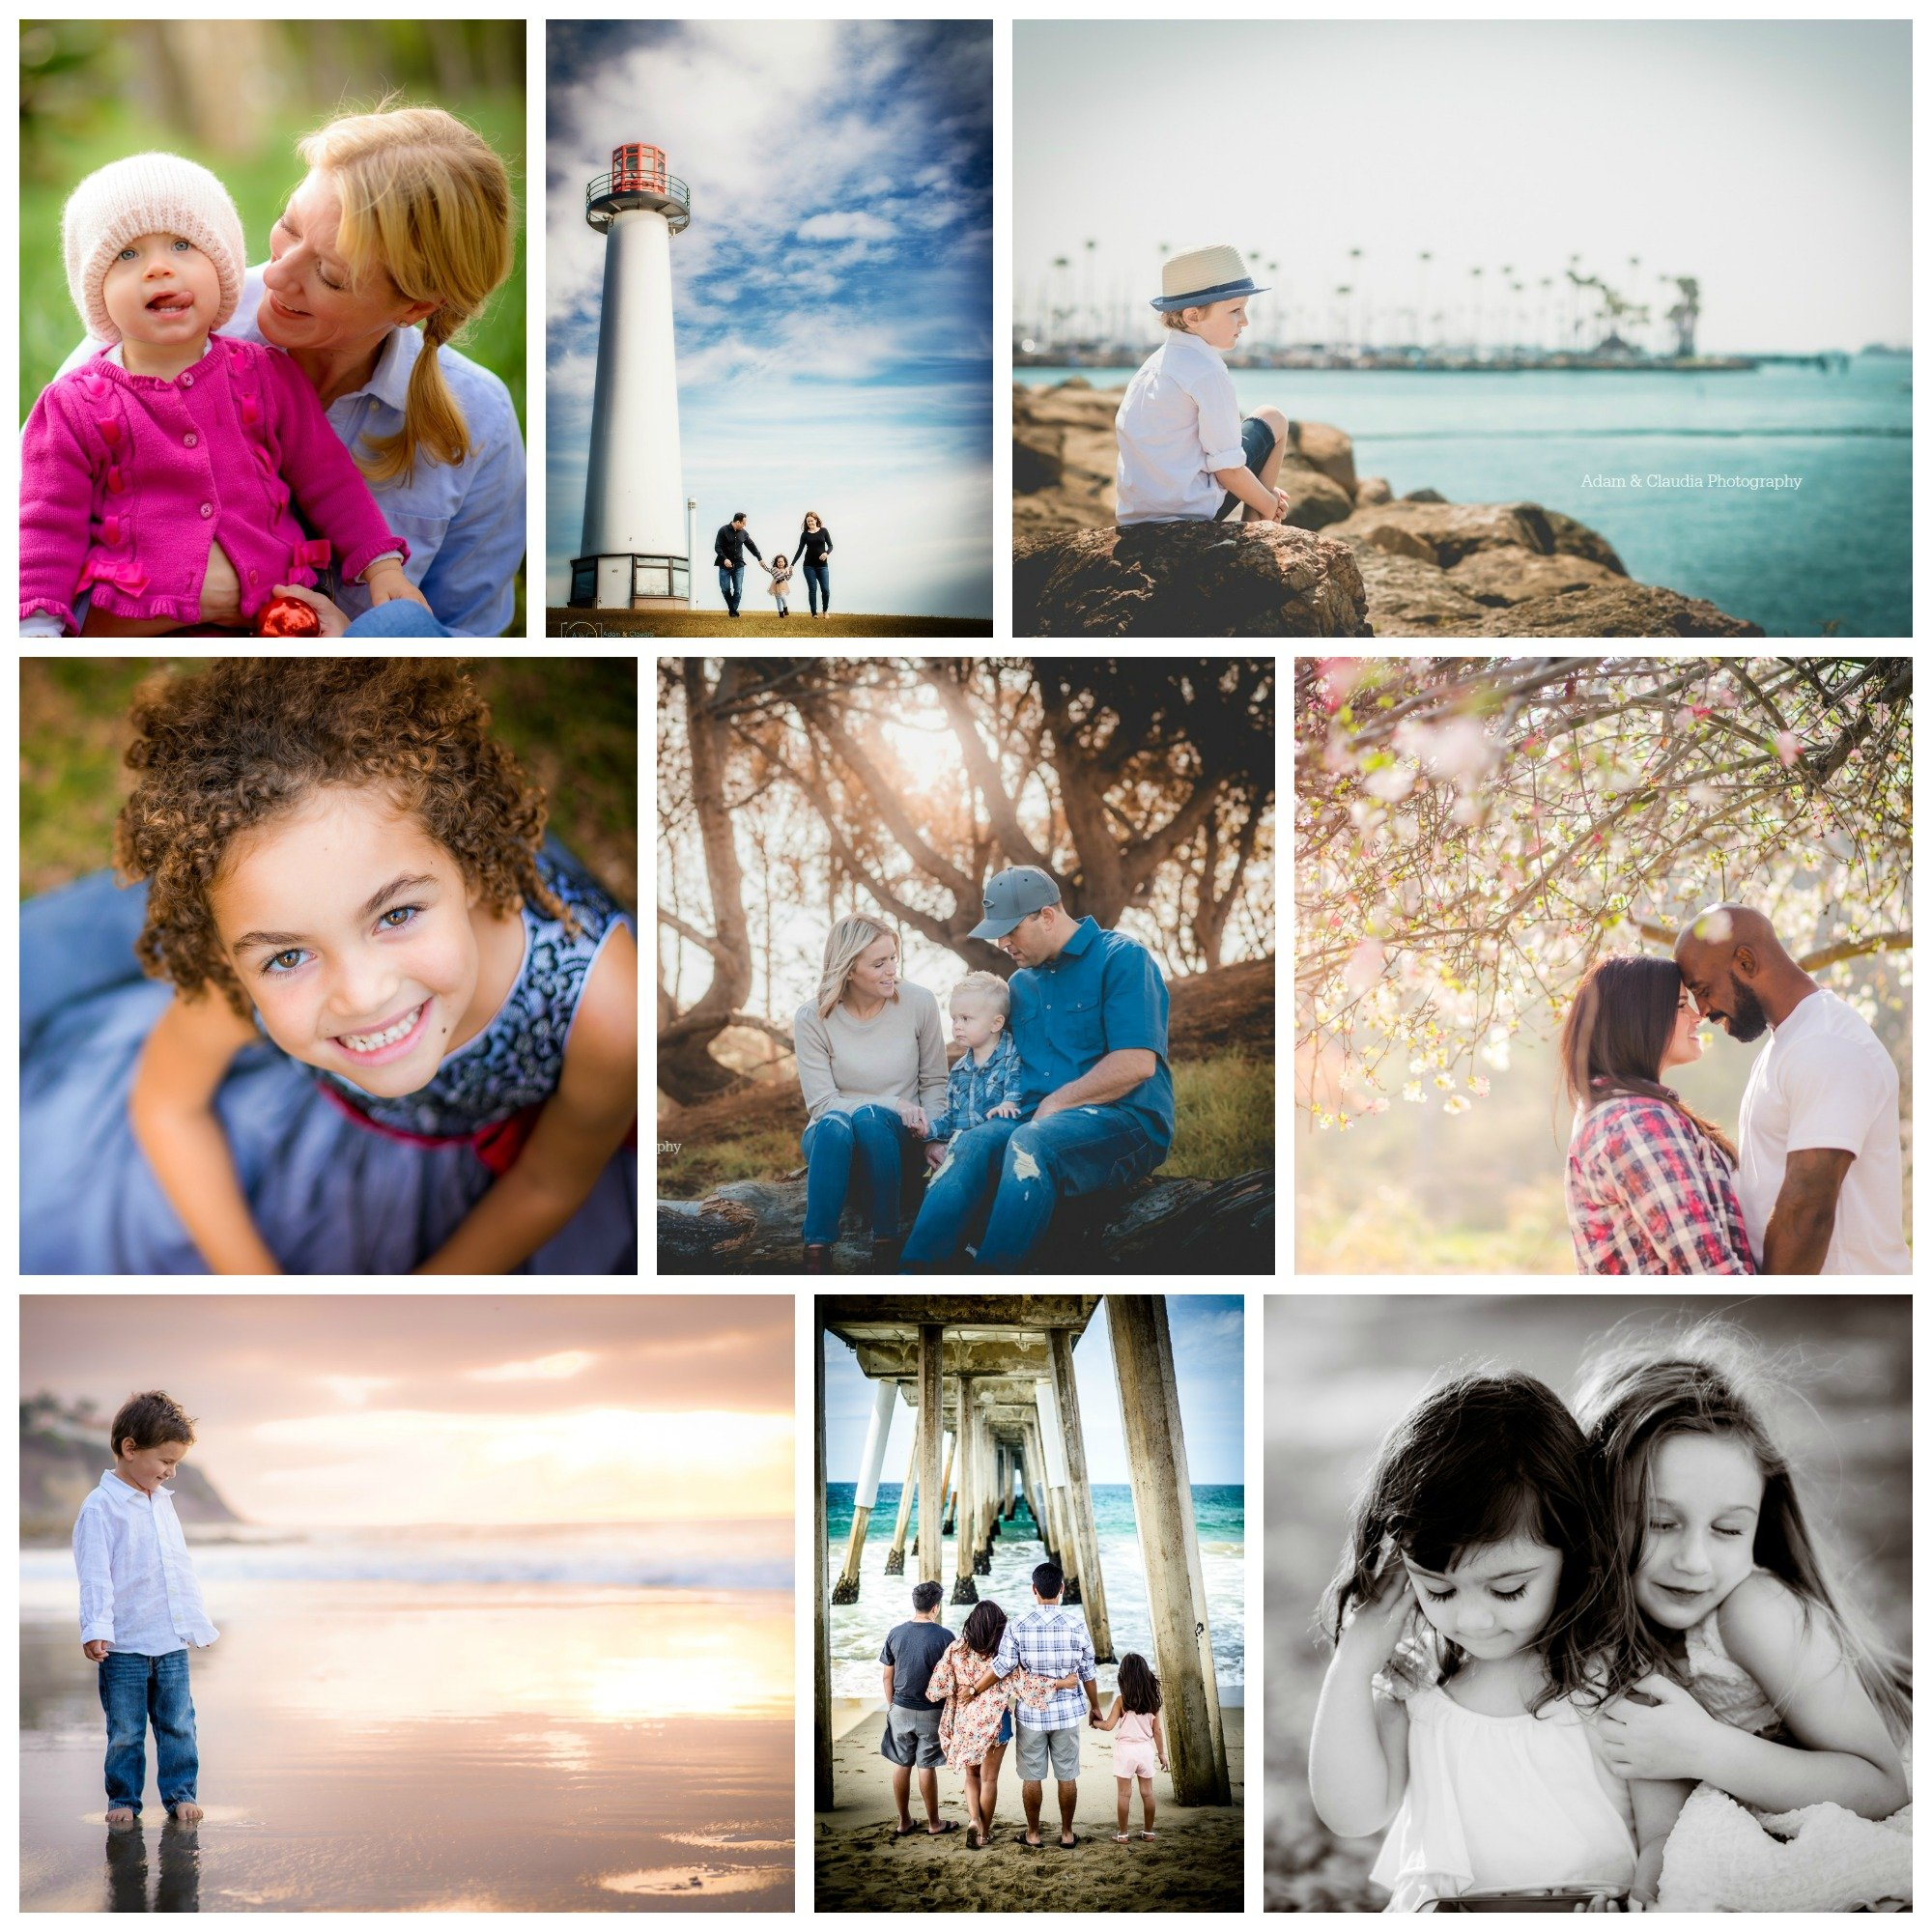 Photos of Private Portrait Sessions